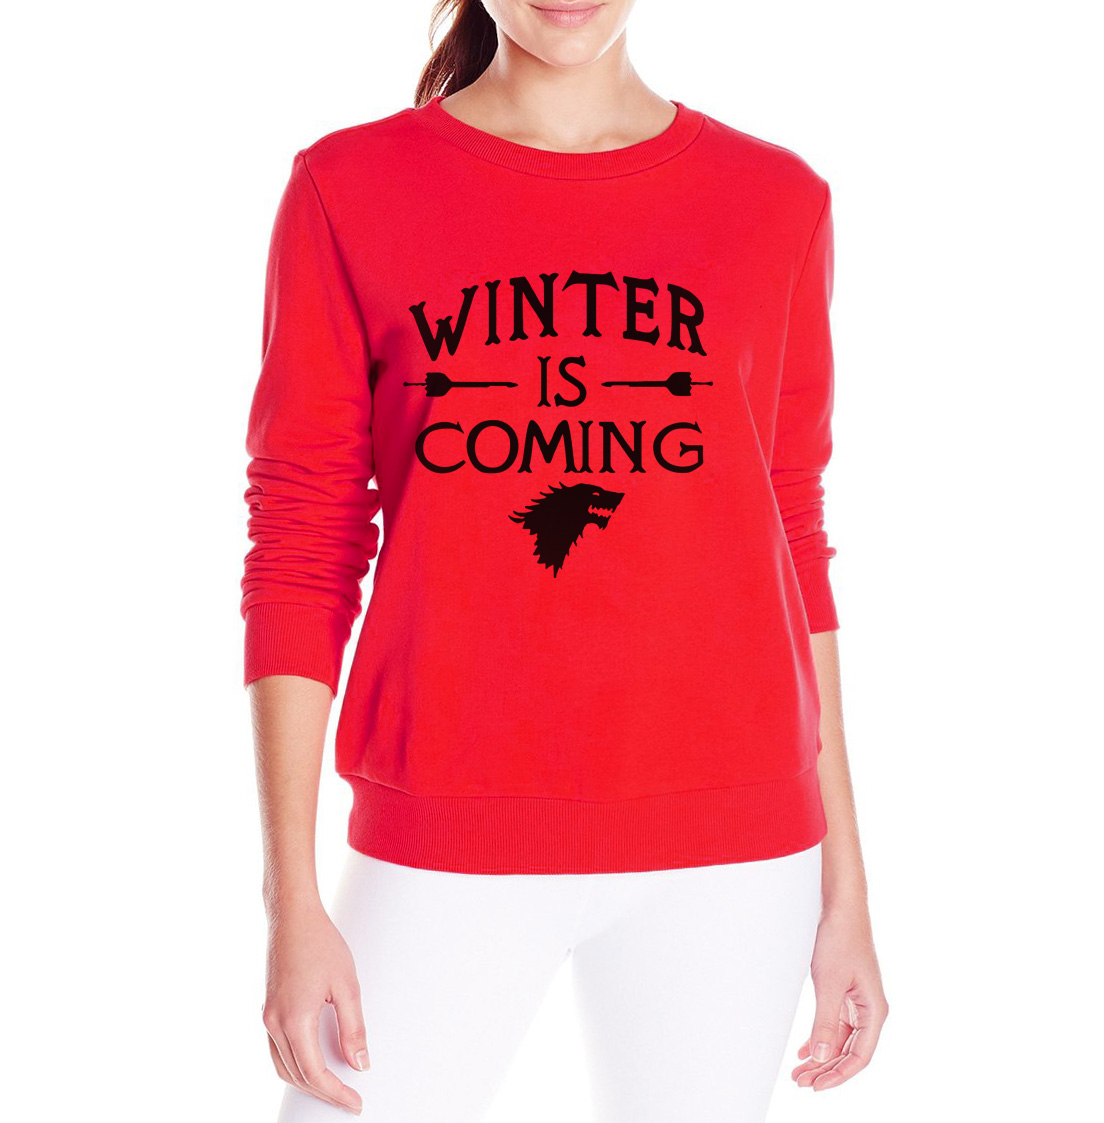 sweatshirt-winter-is-coming-woman5-asylum4nerd